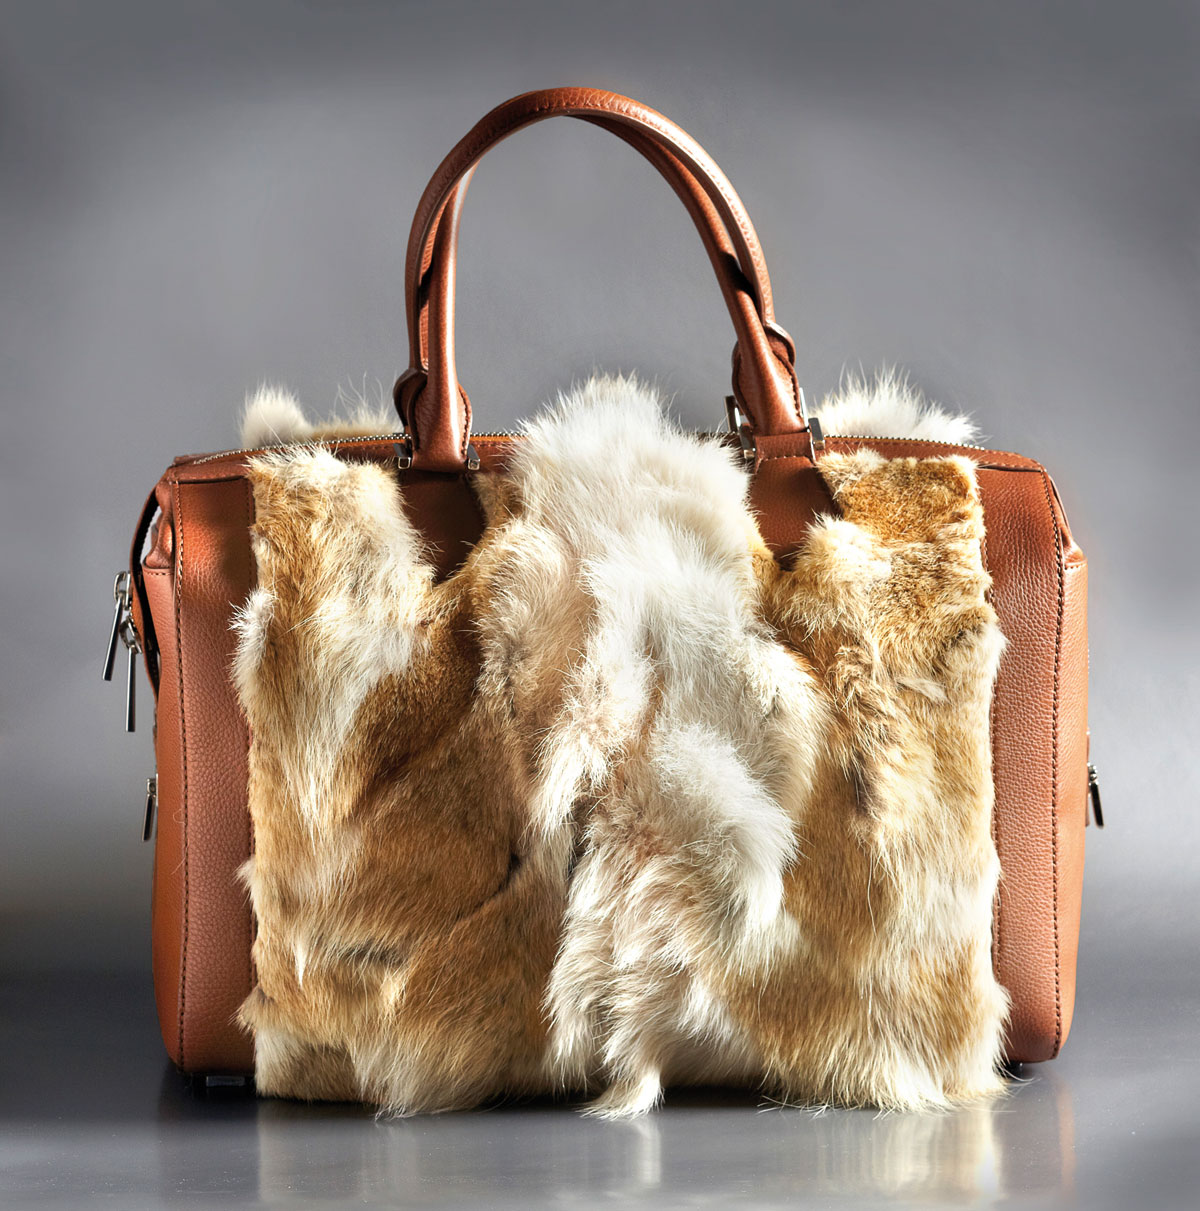 m09-sac-bag-michael-kors-collection